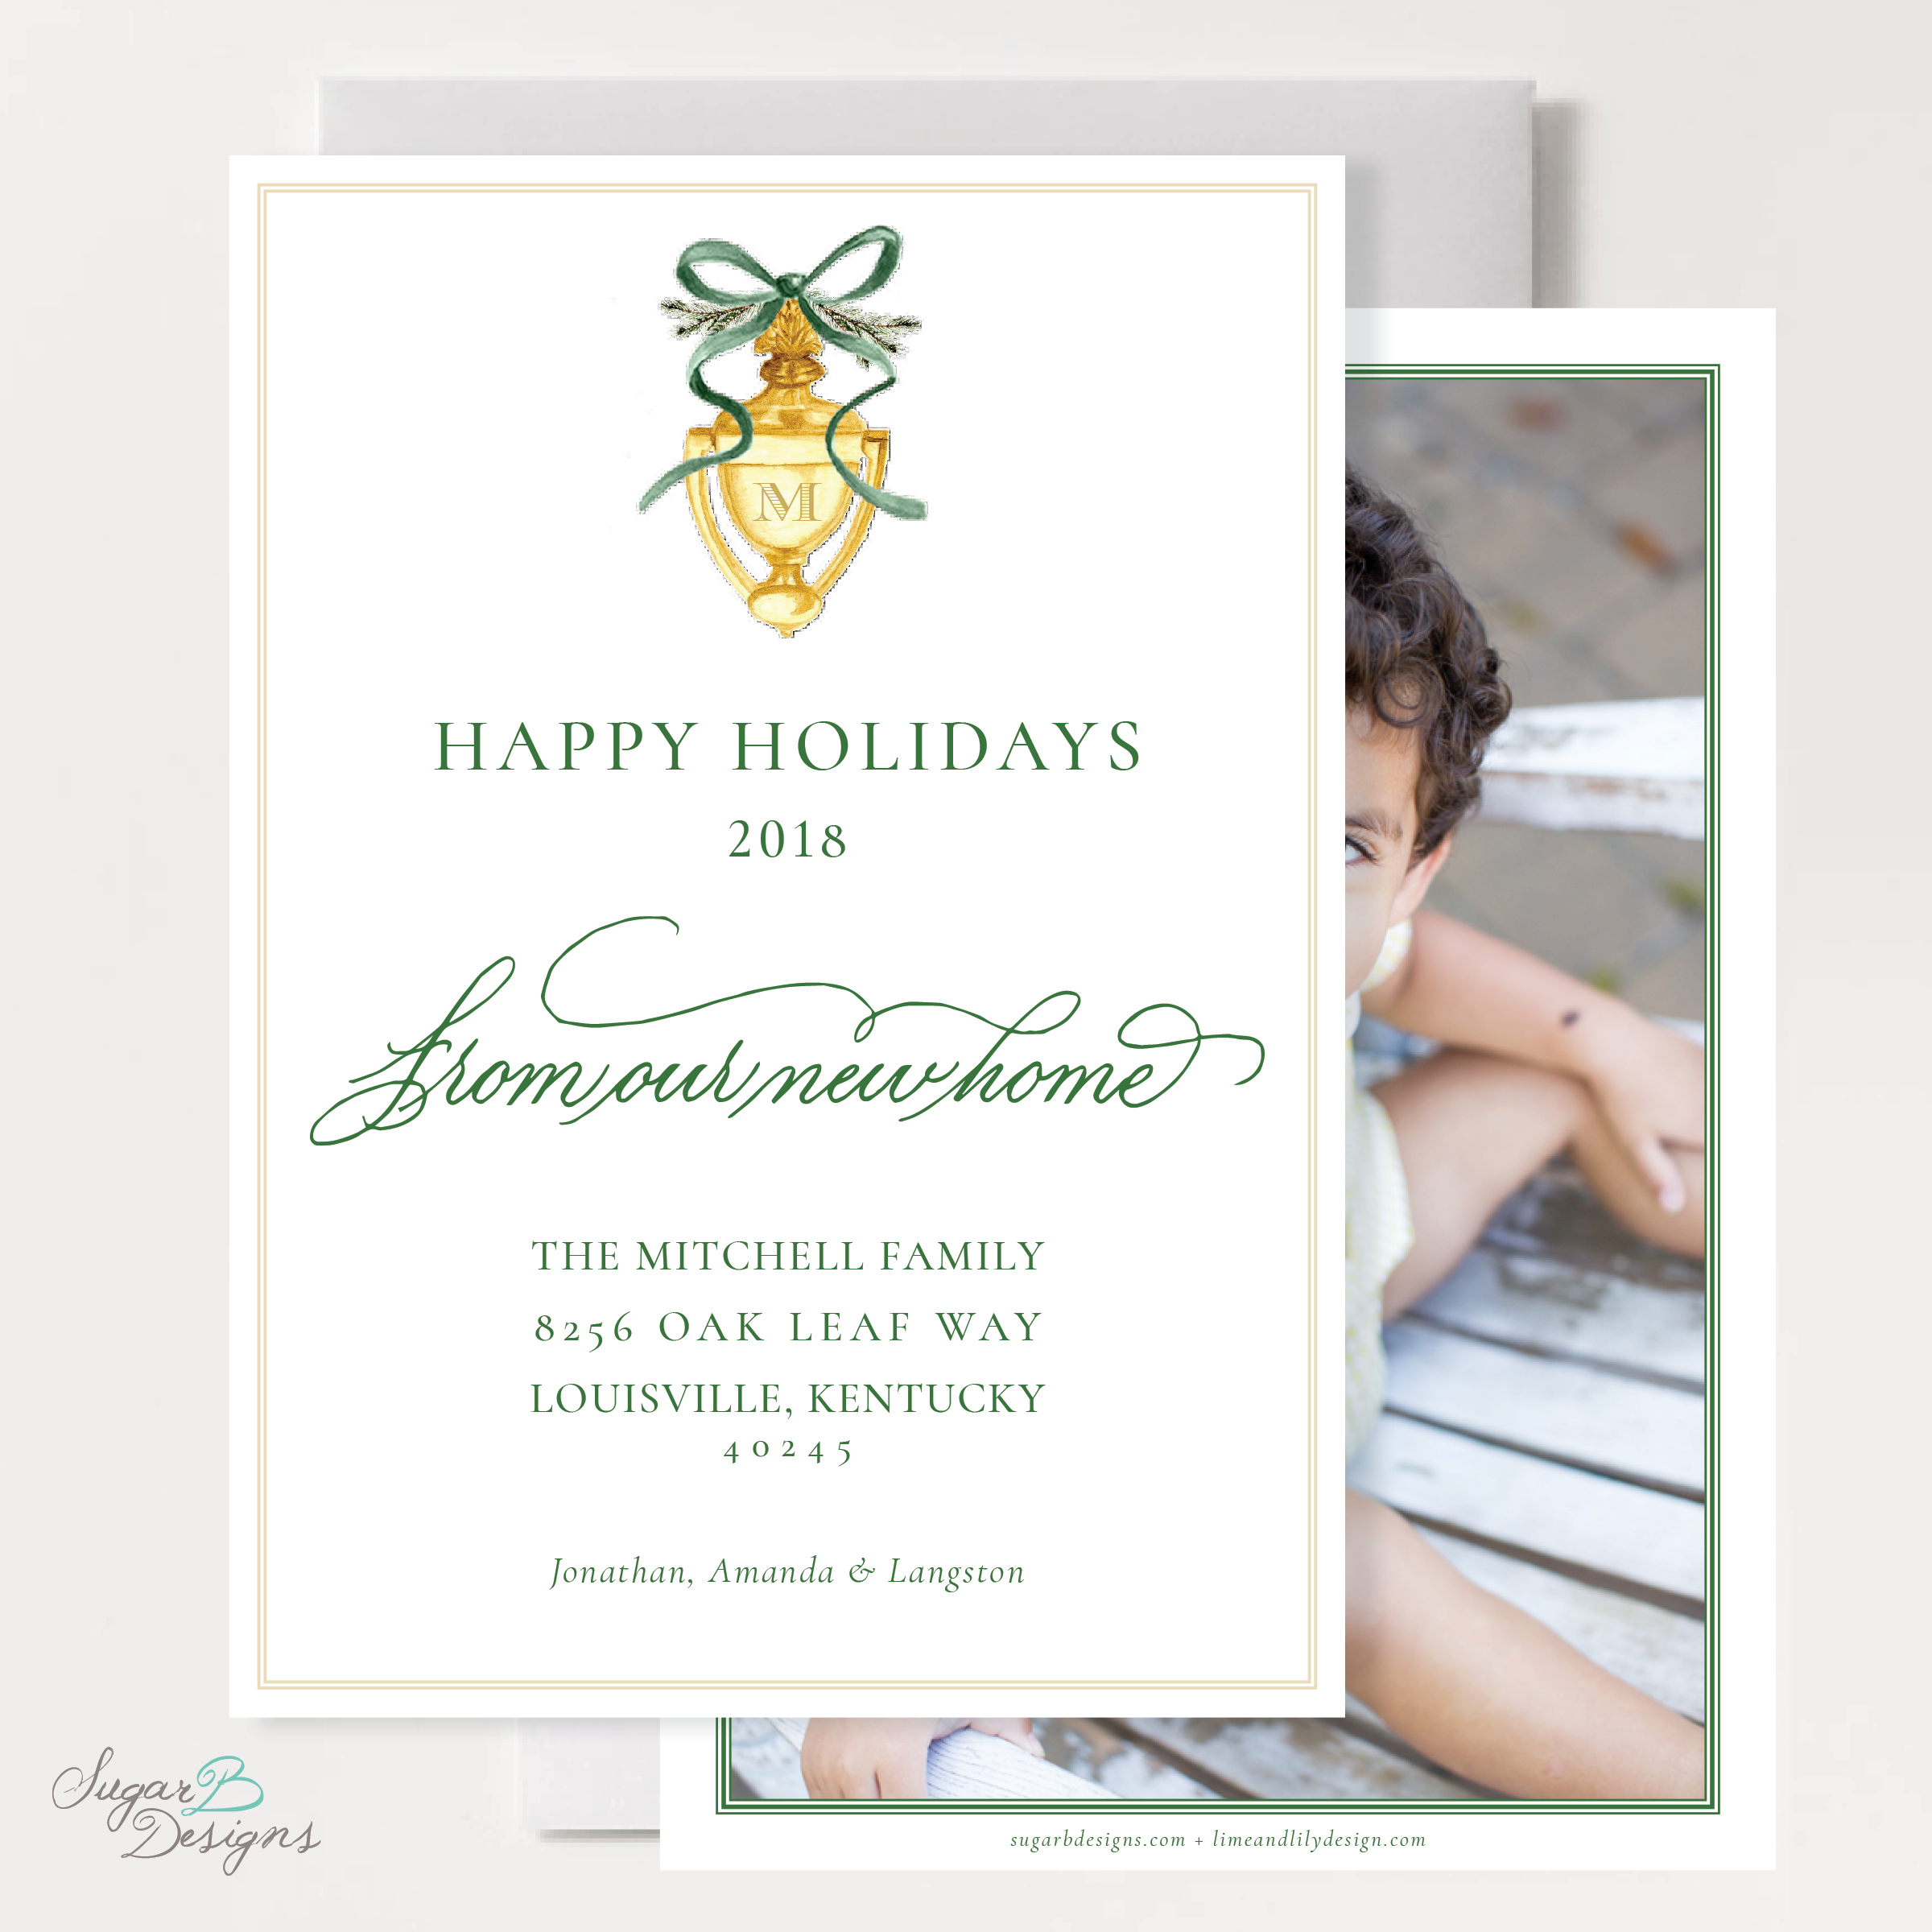 Door Knocker Green Change of Address Christmas Card front + back by Sugar B Designs.png